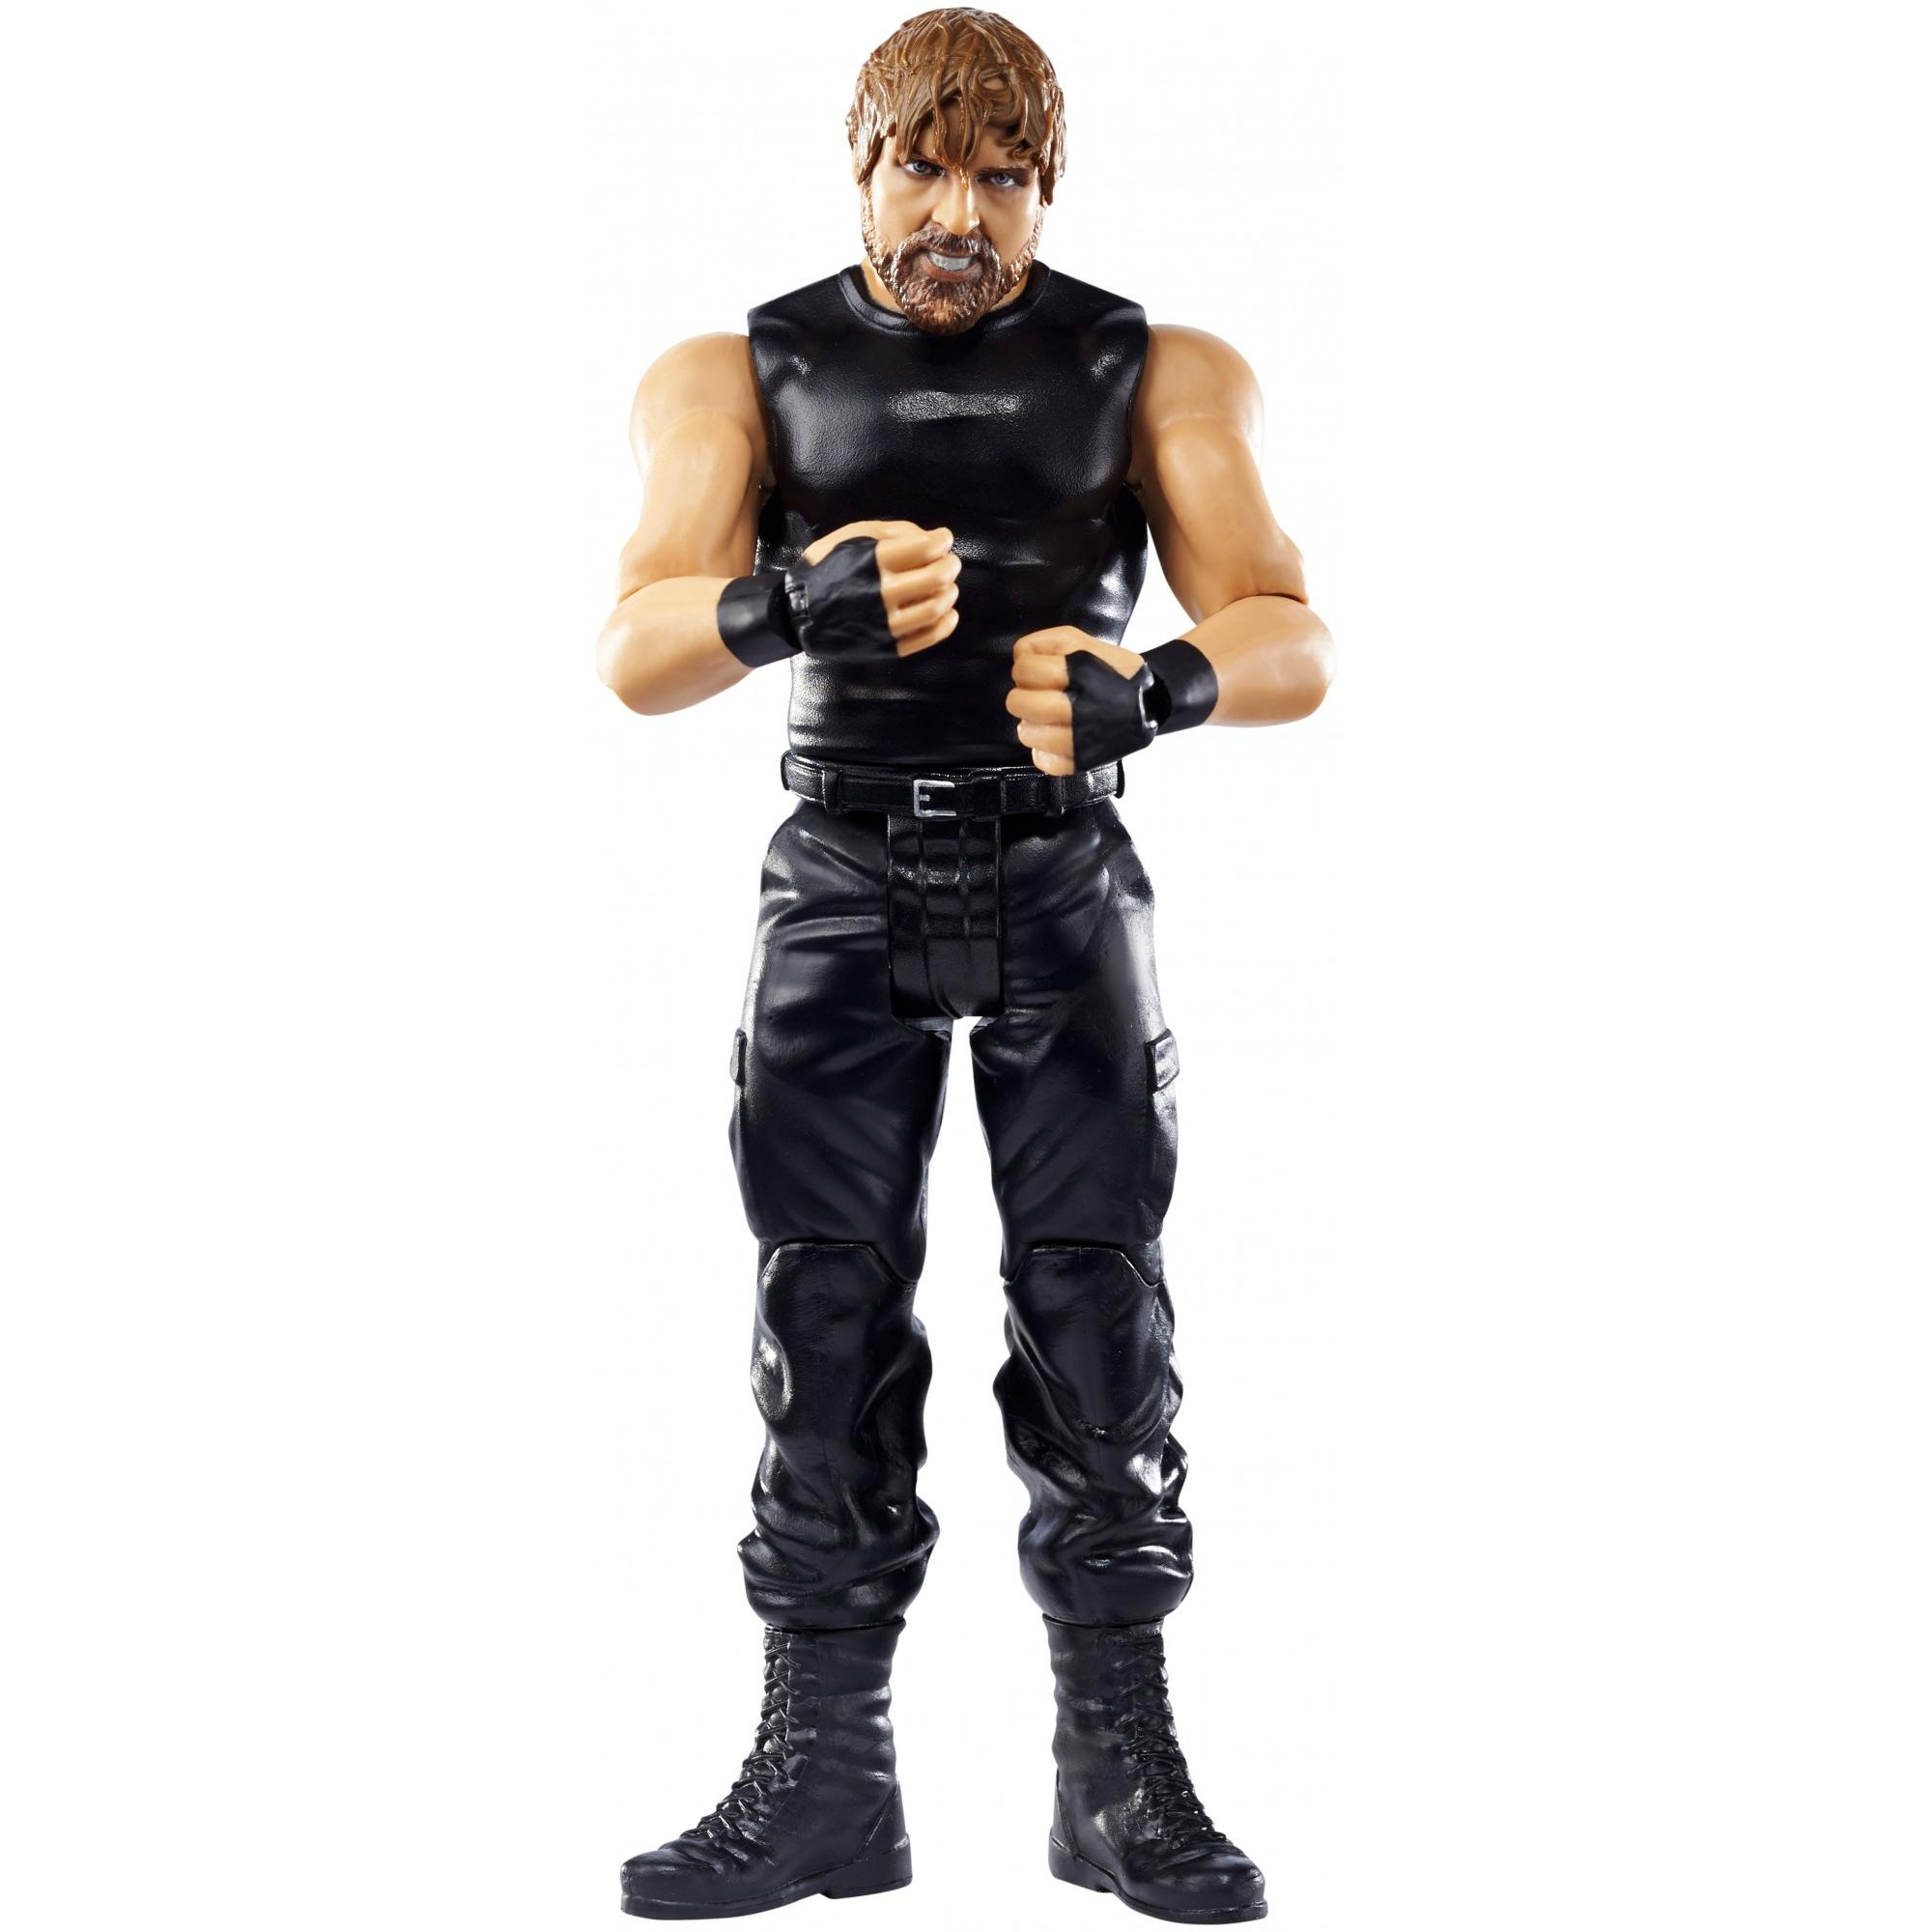 WWE Series #91 Dean Ambrose 6-inch Scale Action Figure